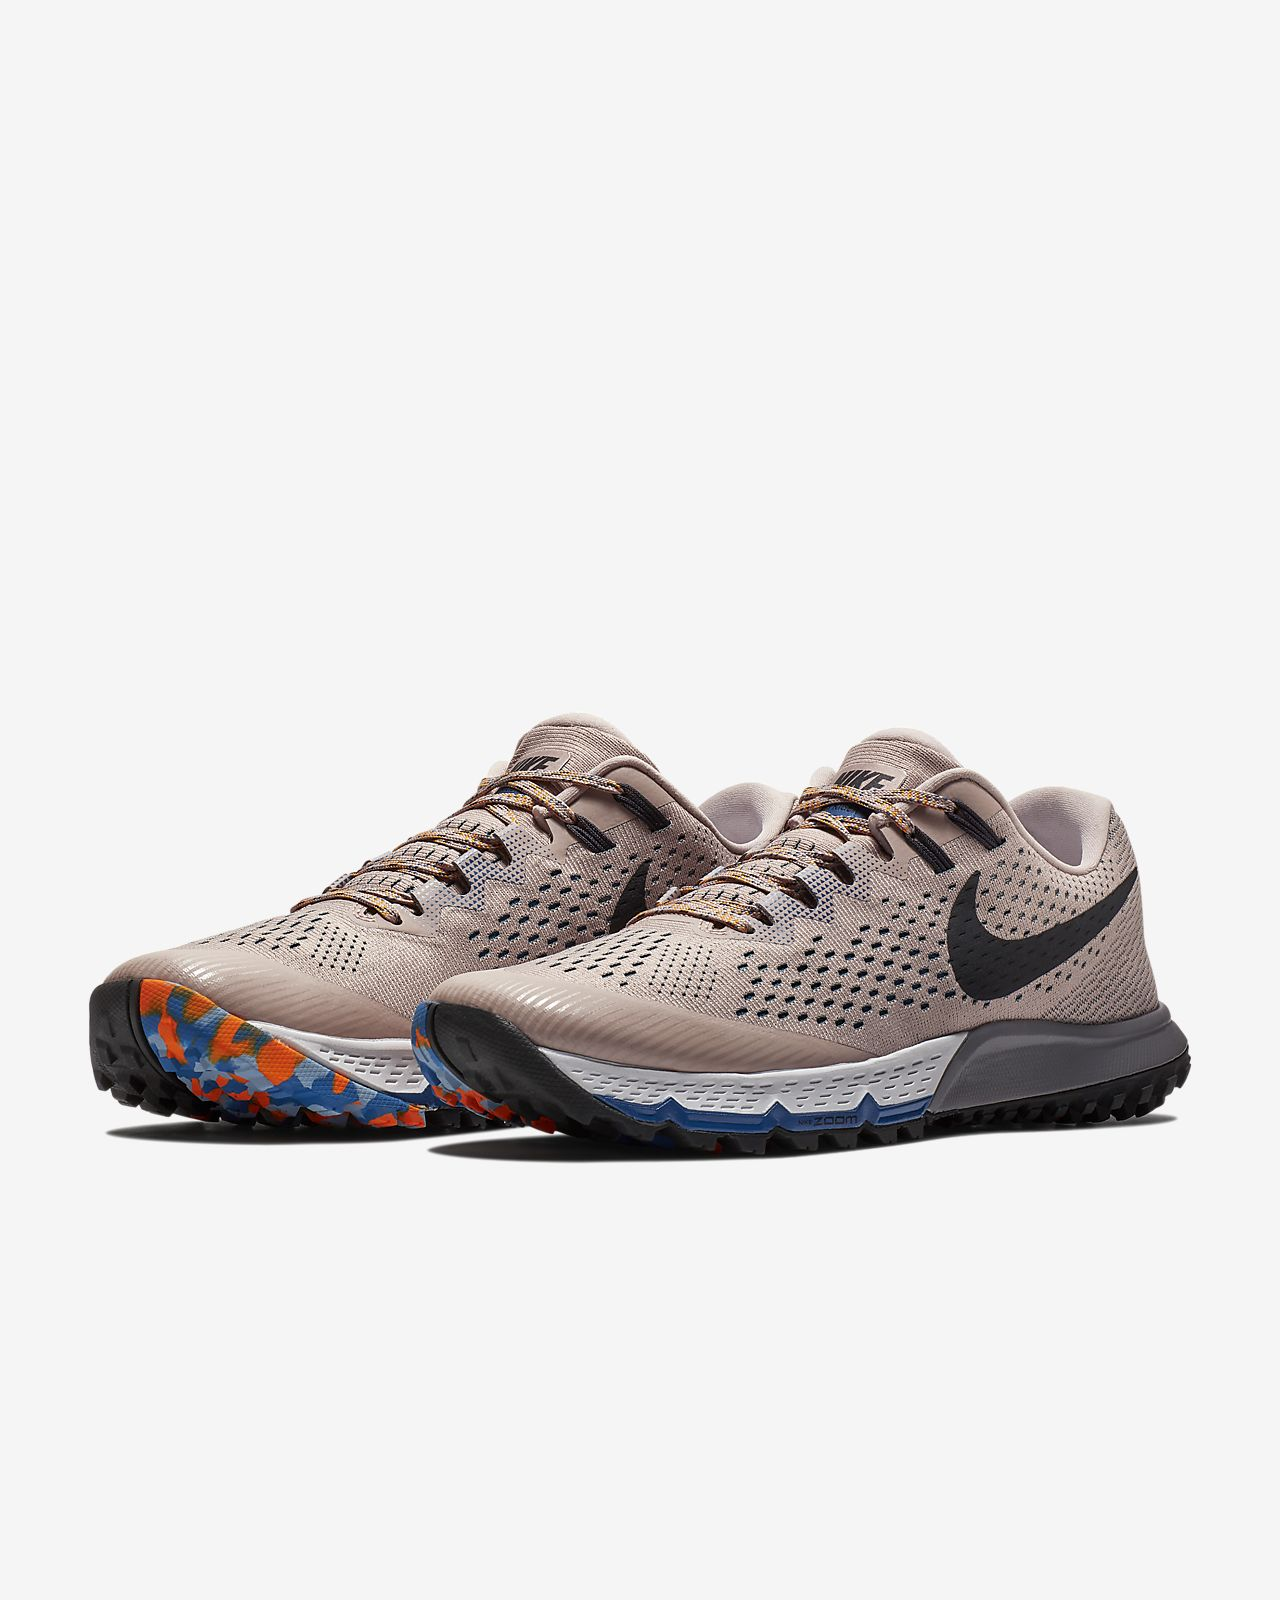 new arrival eea0d f850a Very Goods   Nike Air Zoom Terra Kiger 4 Men s Running Shoe. Nike.com DK